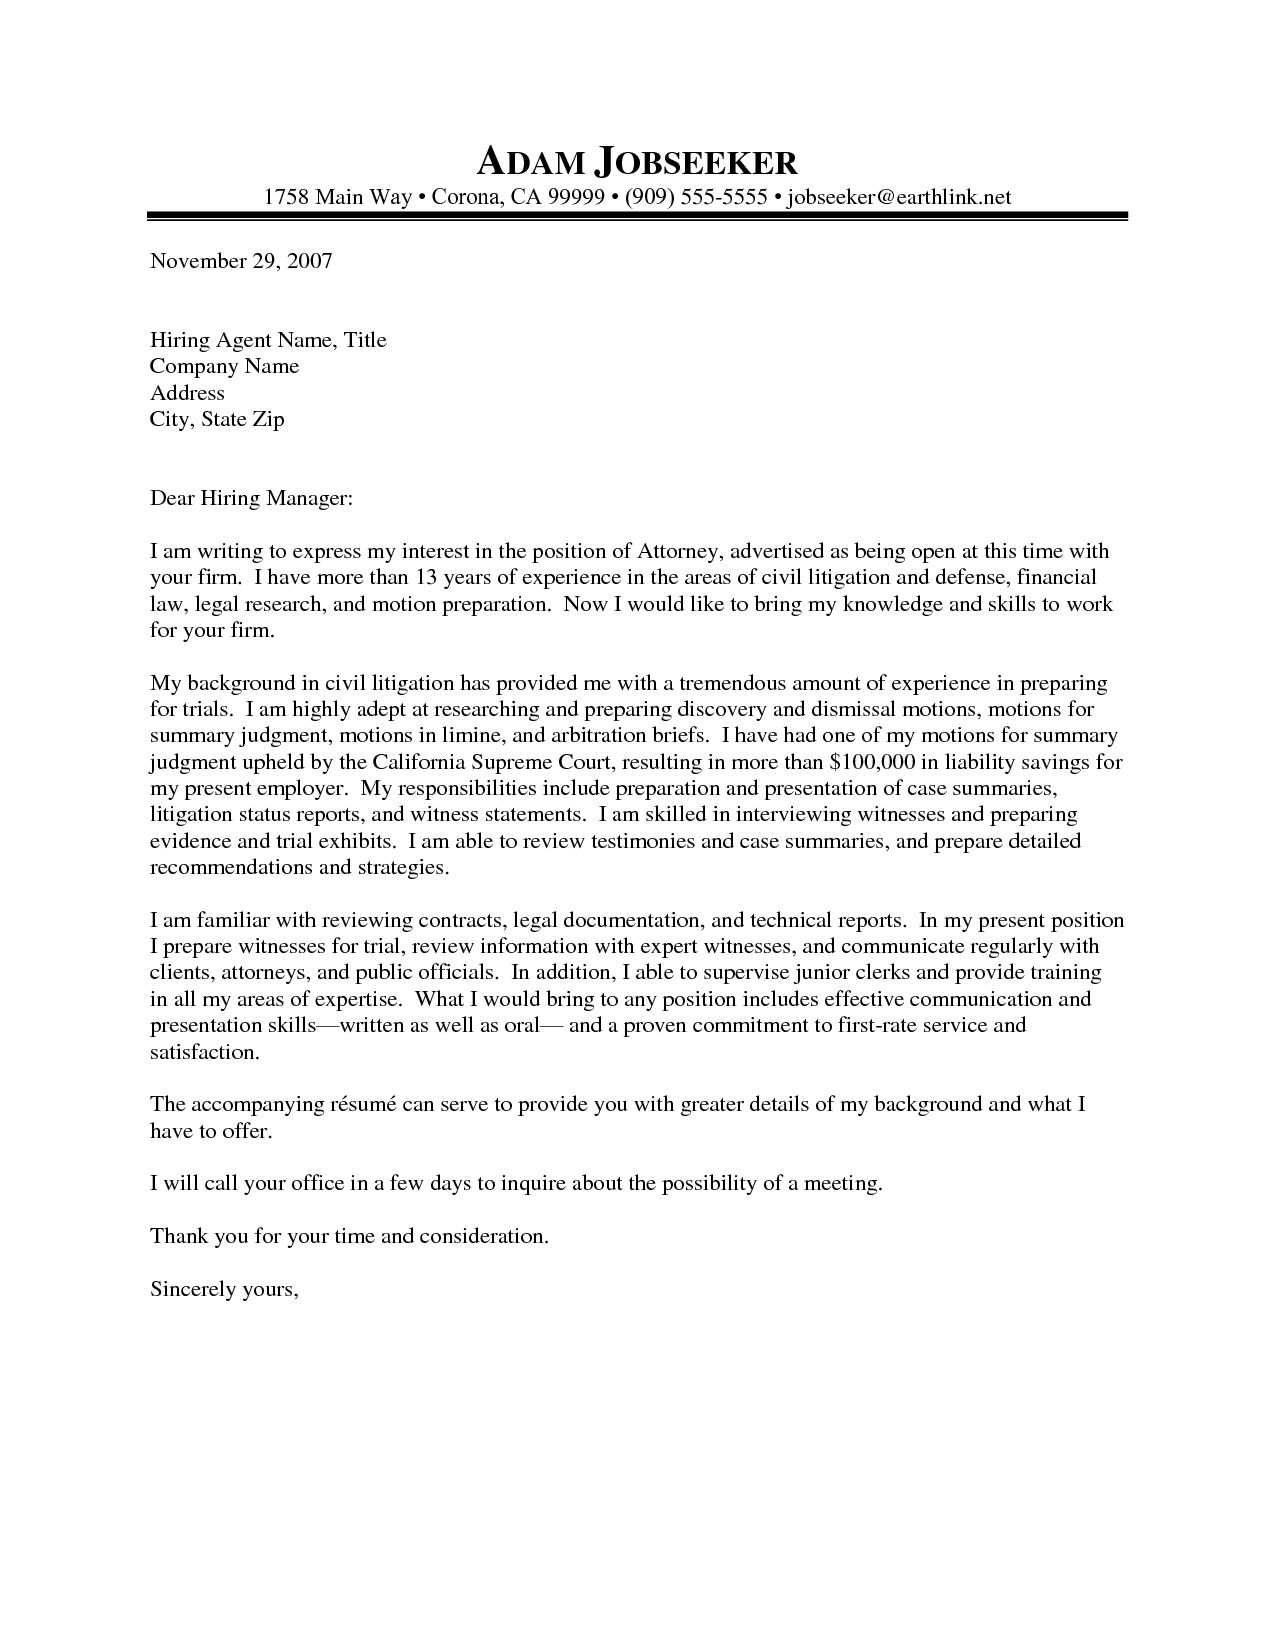 Cover Letter Template Attorney Cover letter, Cover